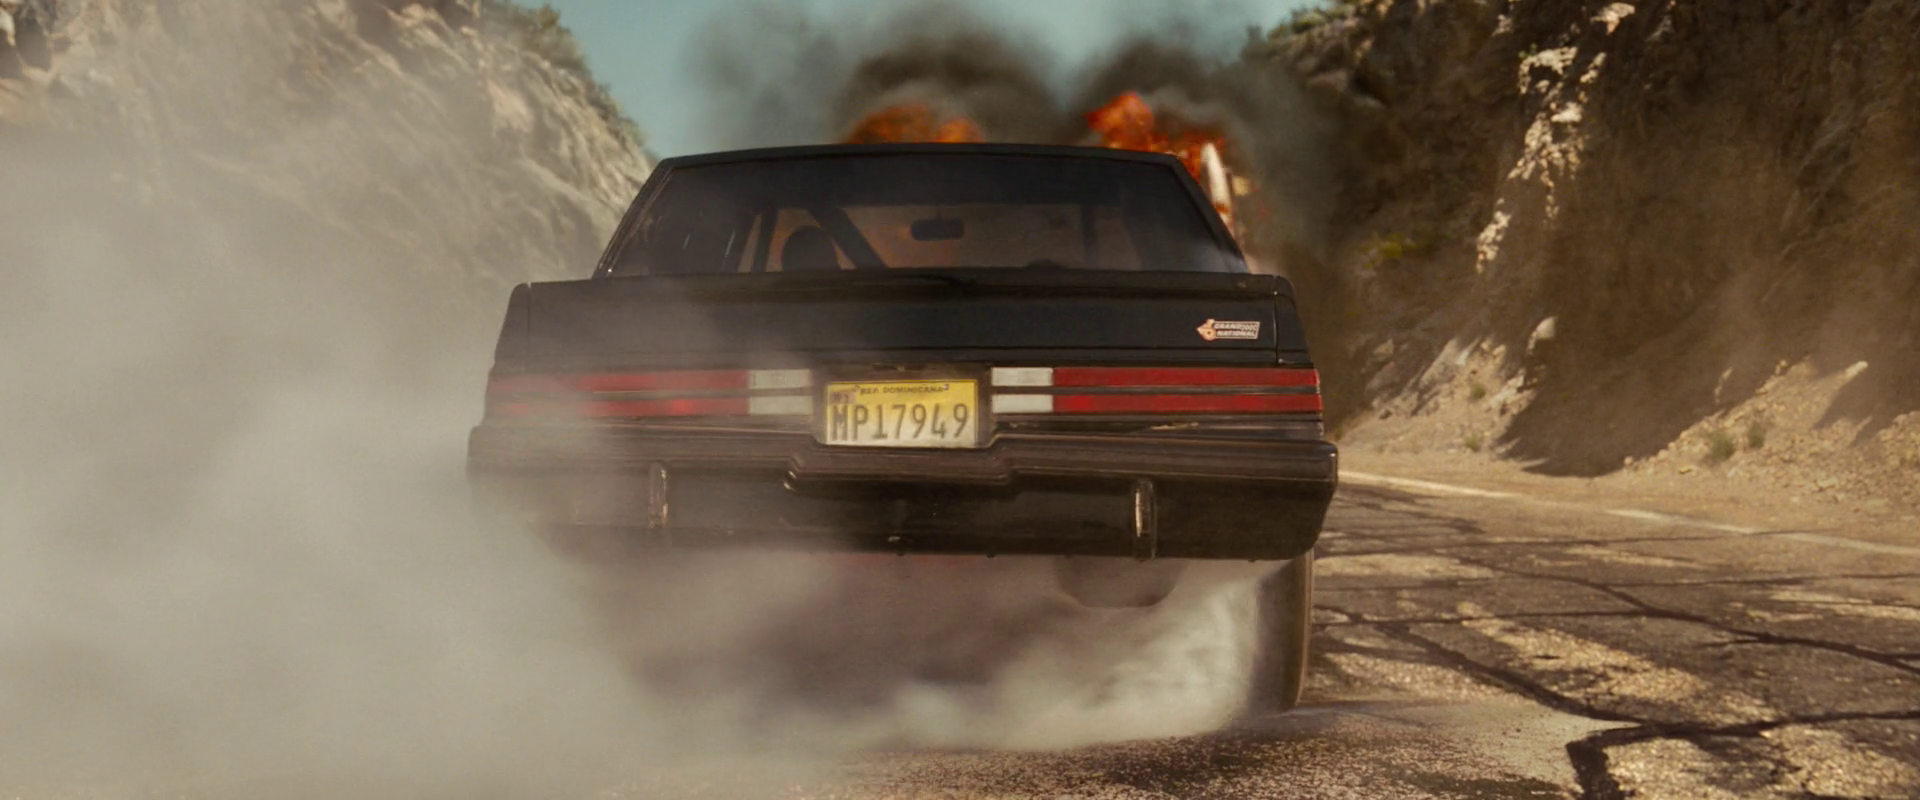 FAST AND FURIOUS 1987 BUICK GRAND NATIONAL